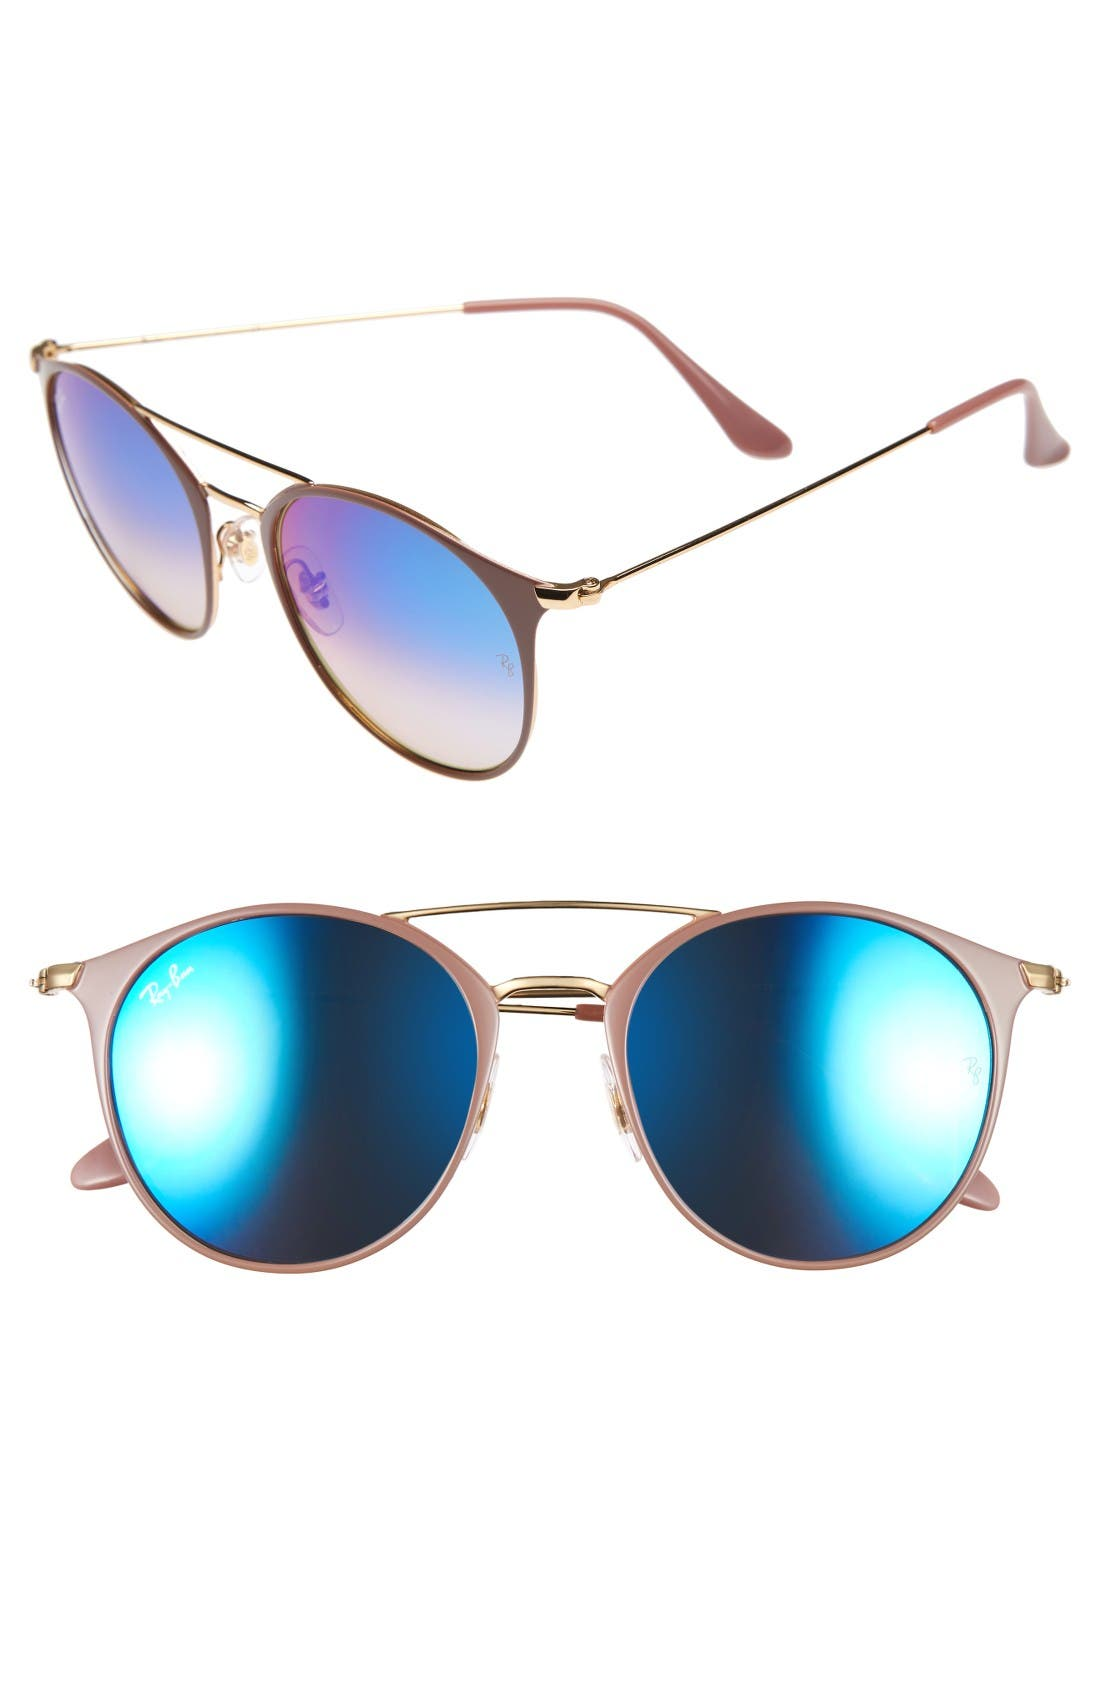 Main Image - Ray-Ban Highstreet 52mm Round Brow Bar Sunglasses